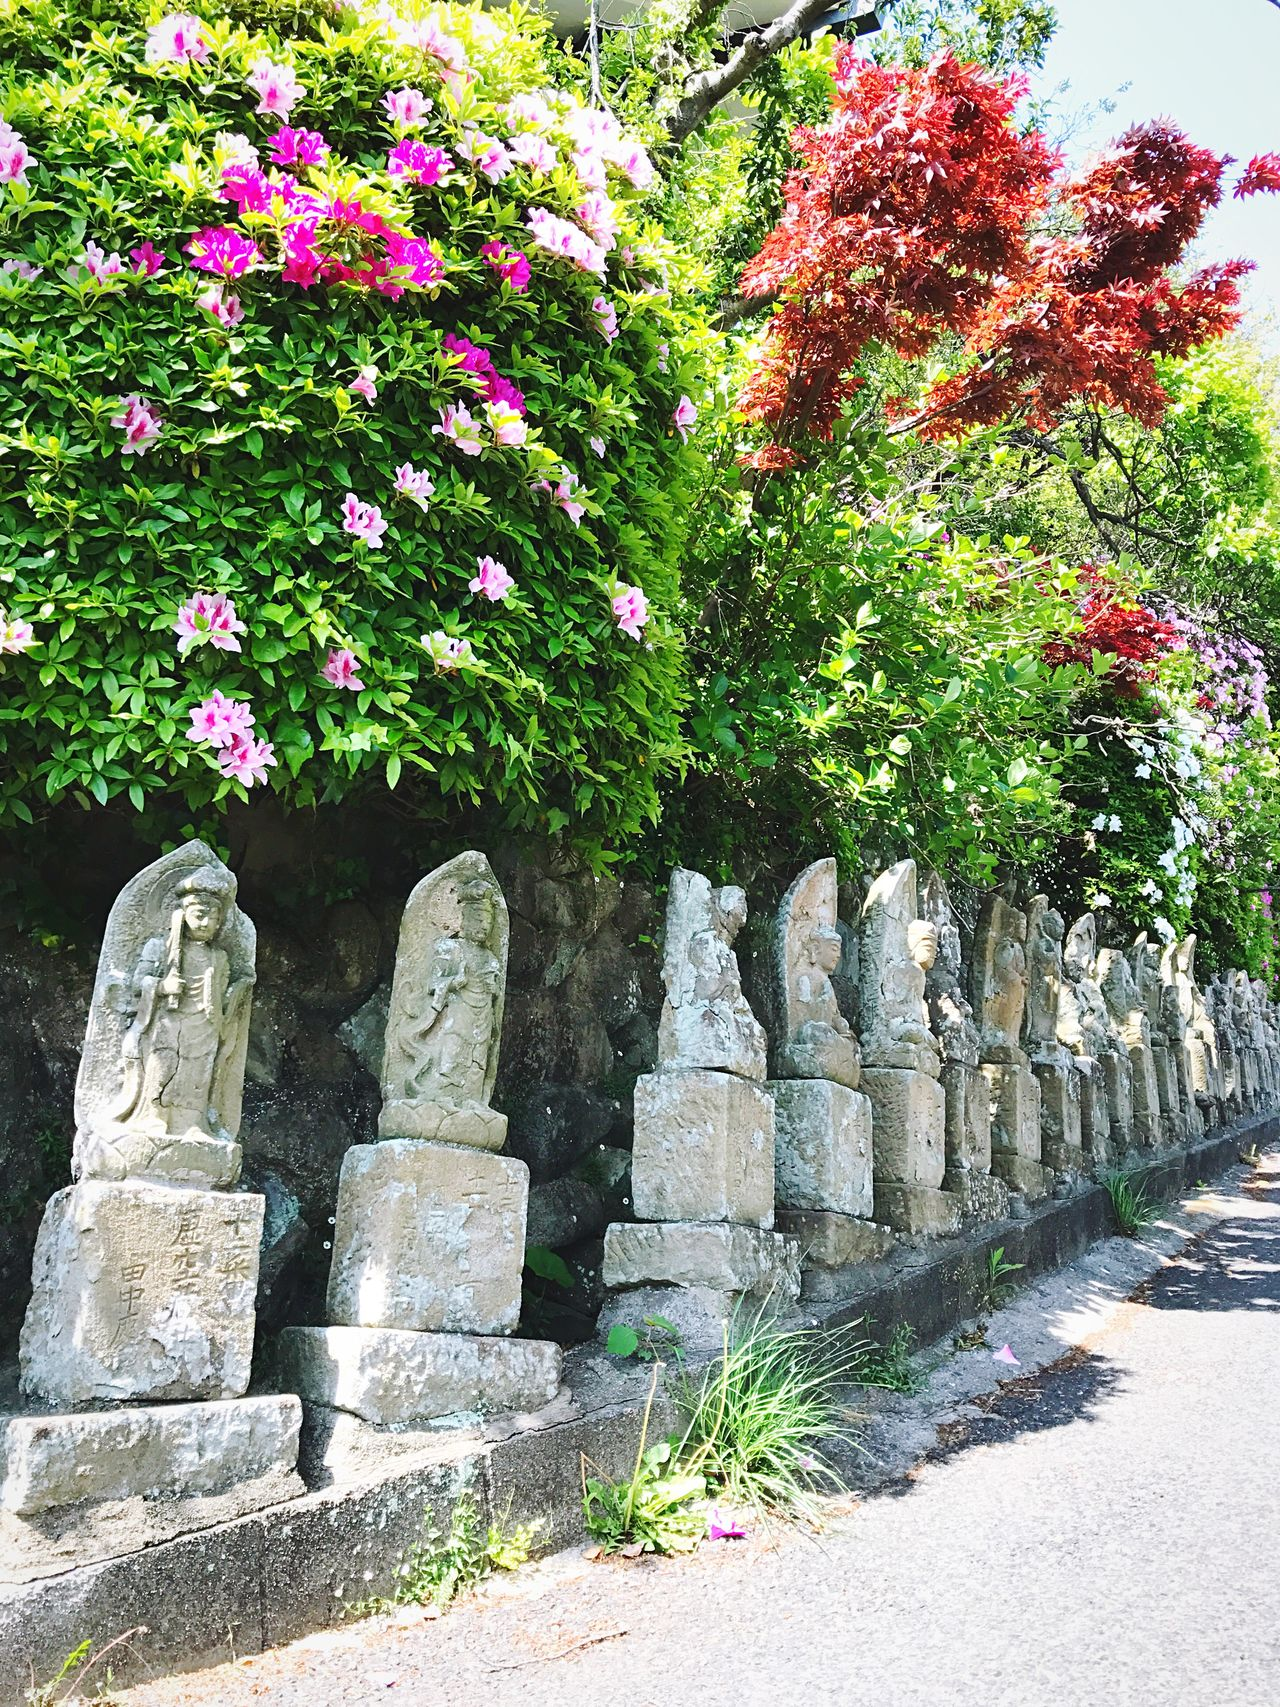 Break The Mold Flower Plant No People Day Outdoors Nature Ancient Civilization